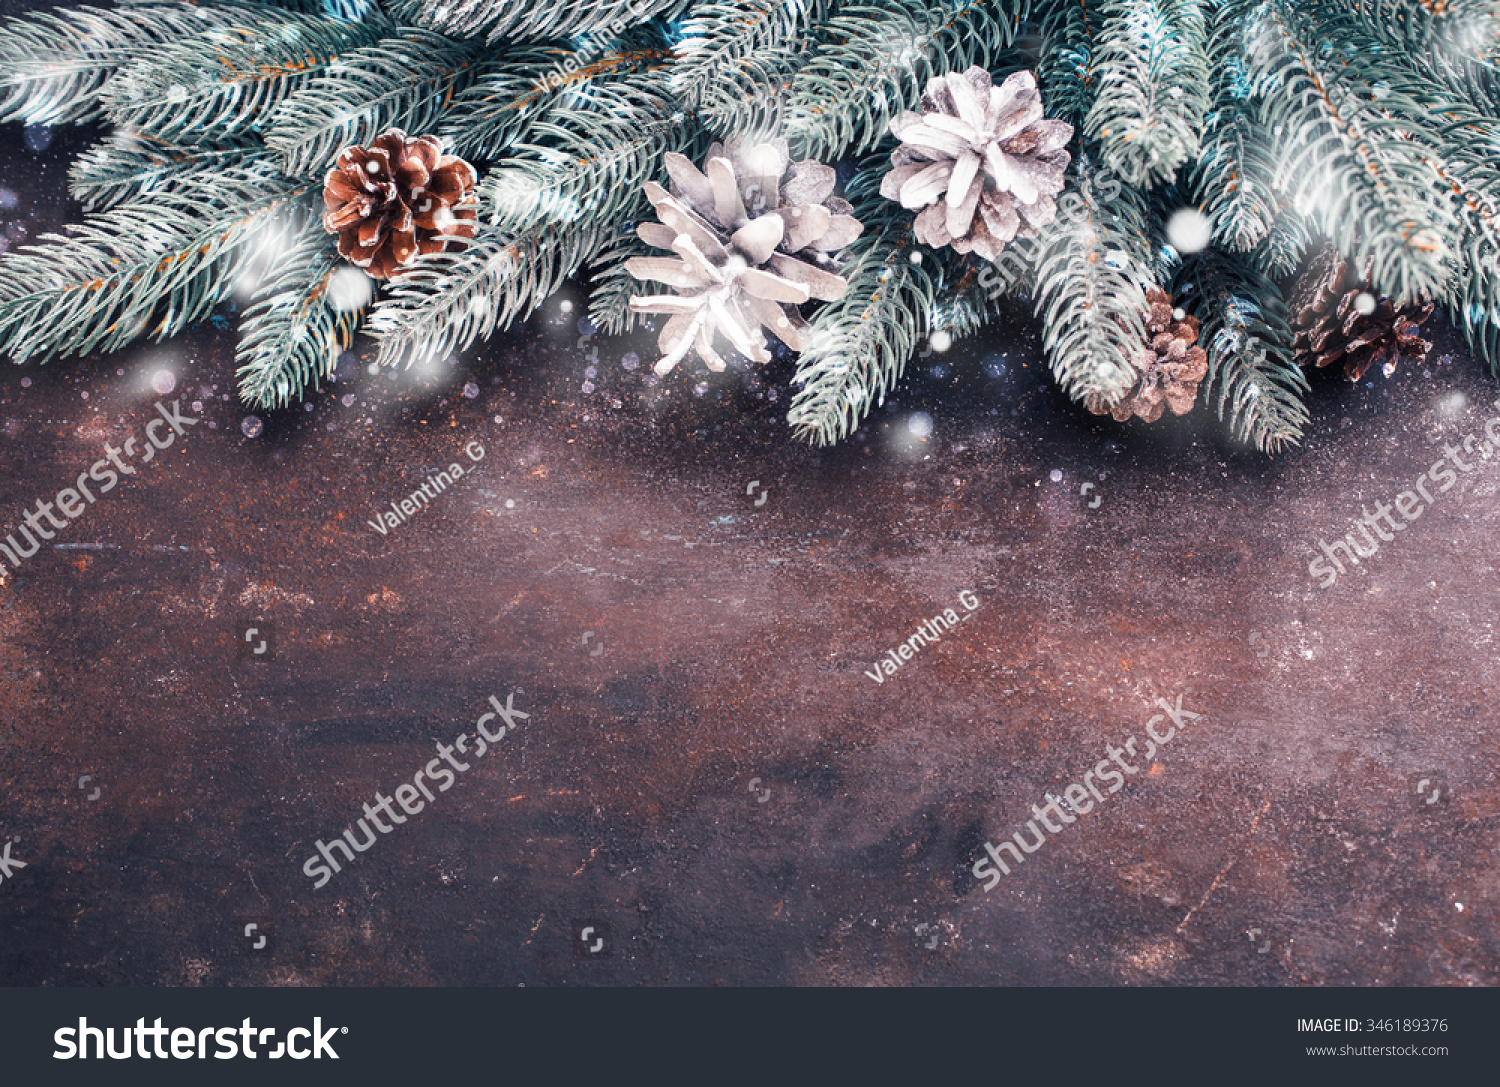 Christmas holidays background with snow Lots of copy space